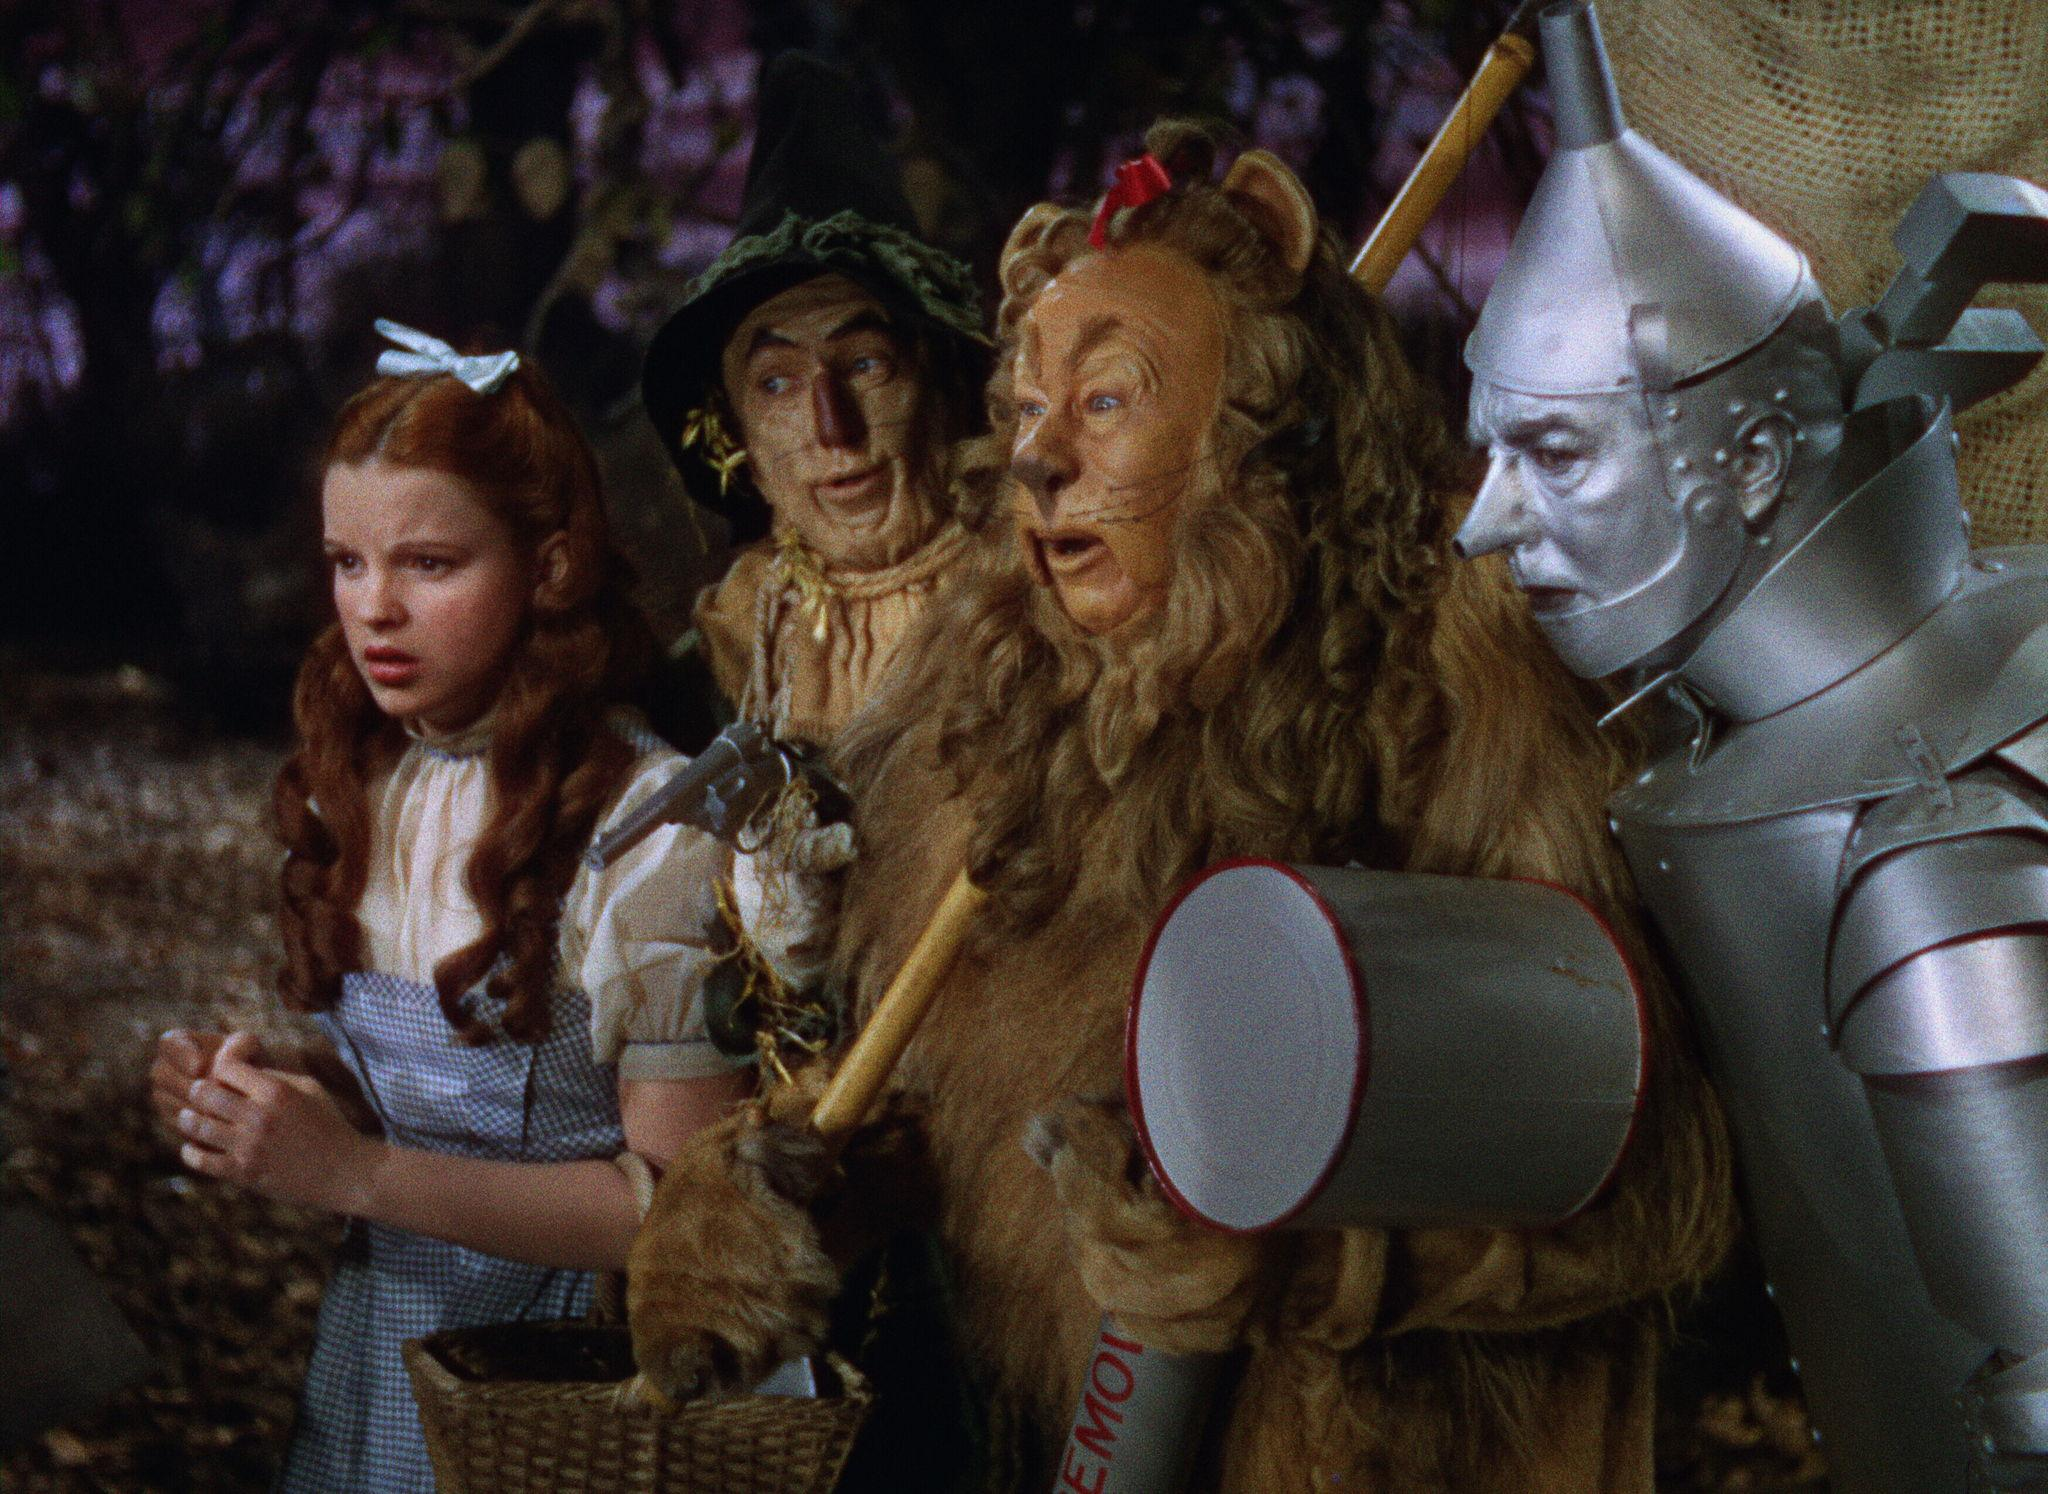 The wizard of oz hd wallpaper background image 2048x1494 id 630965 wallpaper abyss - The wizard of oz hd ...